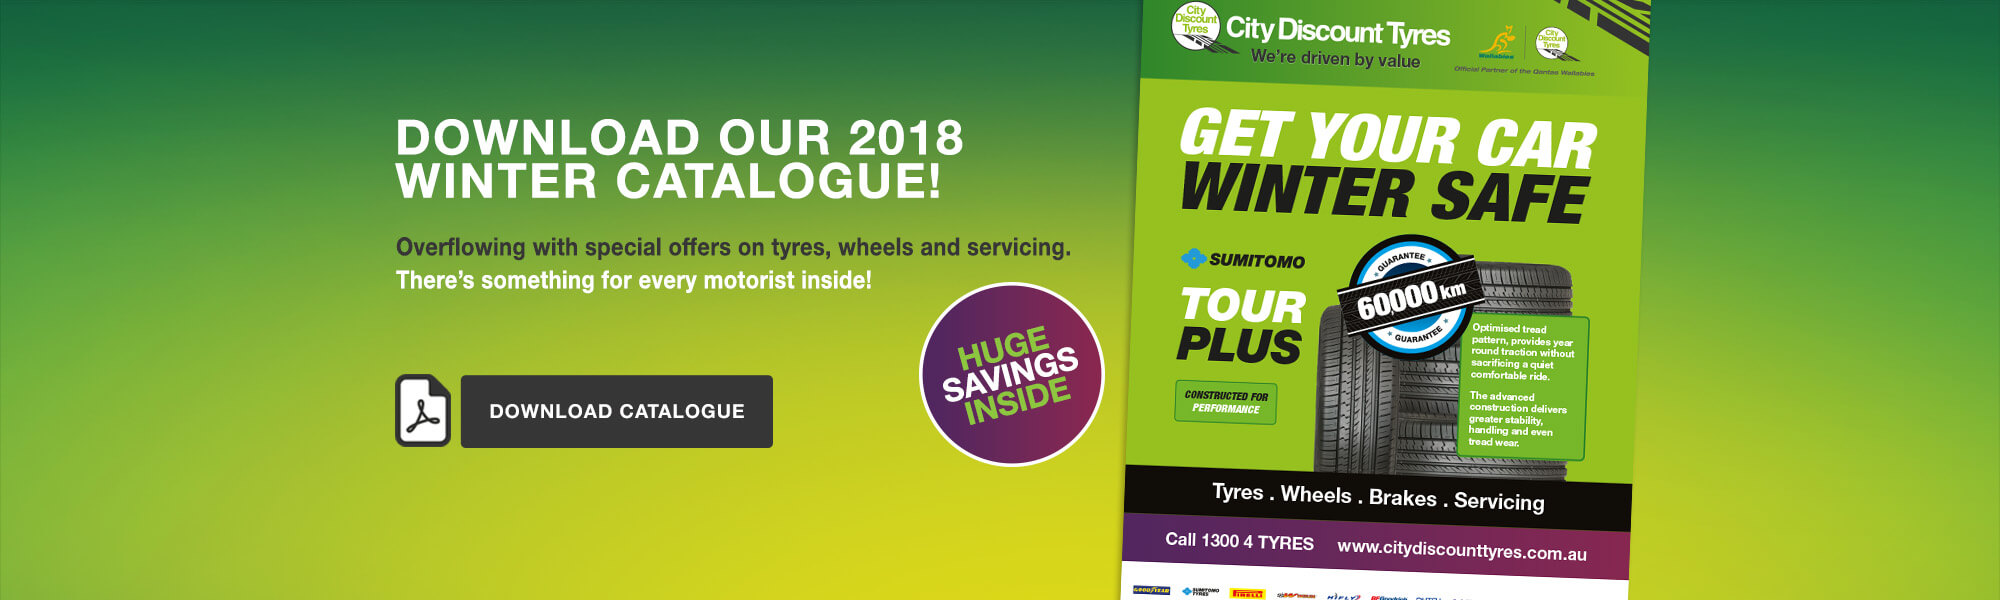 City Discount Tyres Winter Catalogue